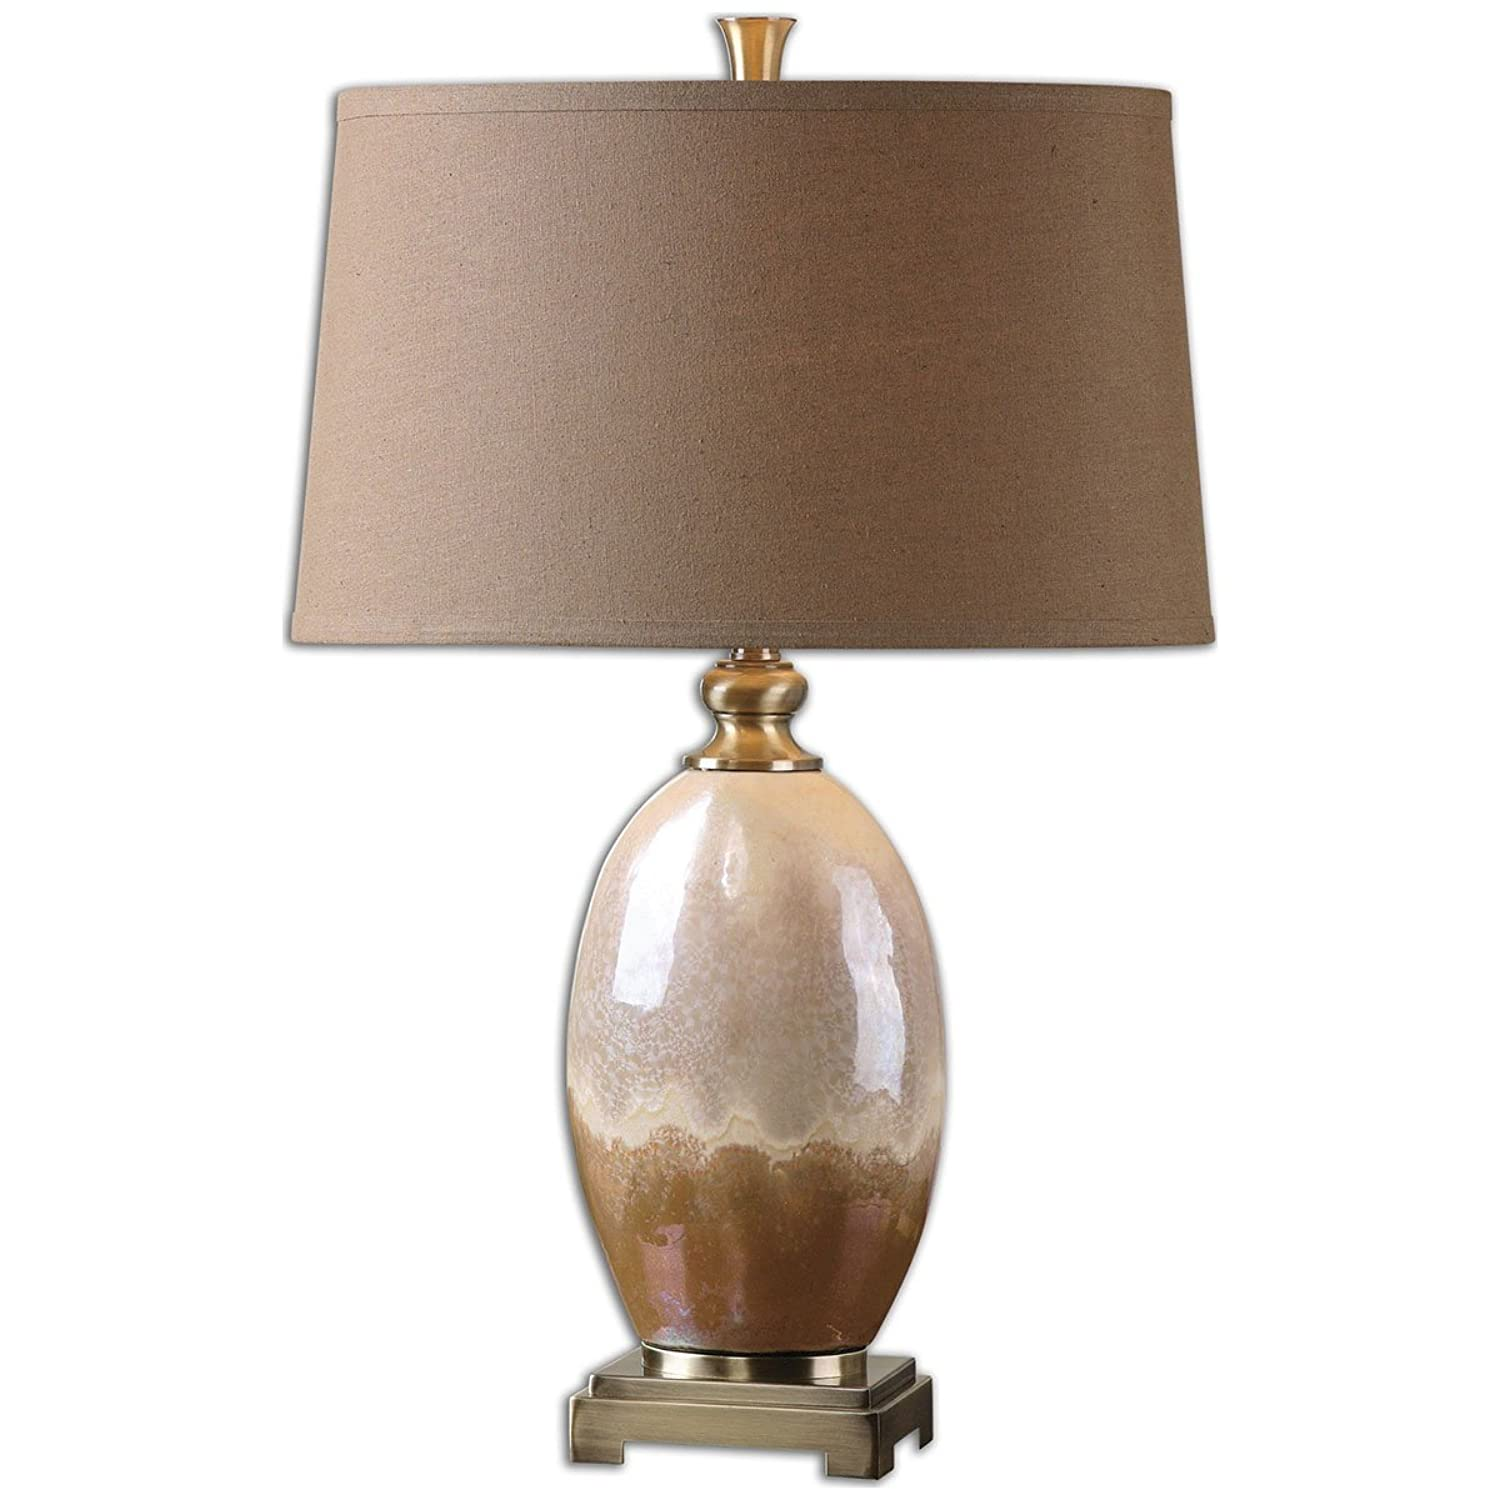 Uttermost 26156 Eadric Ceramic Table Lamp by Uttermost